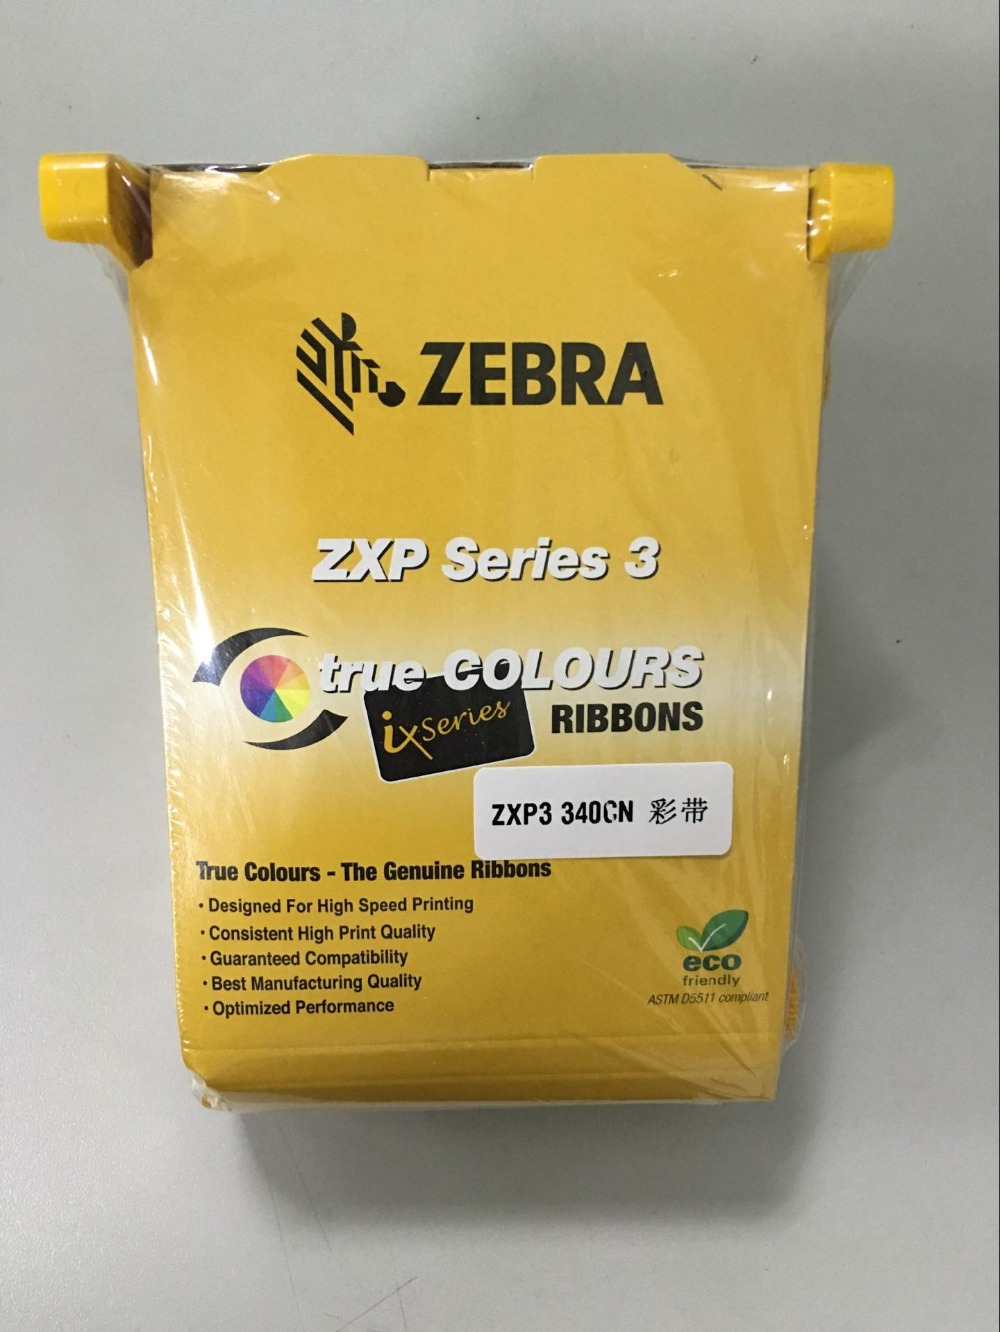 original color printer ribbon, id card color ribbon used with Zebra ZXP Series 3 printer part no.:800033-340cn original color printer ribbon id card color ribbon used with zebra zxp series 3 printer part no 800033 340cn